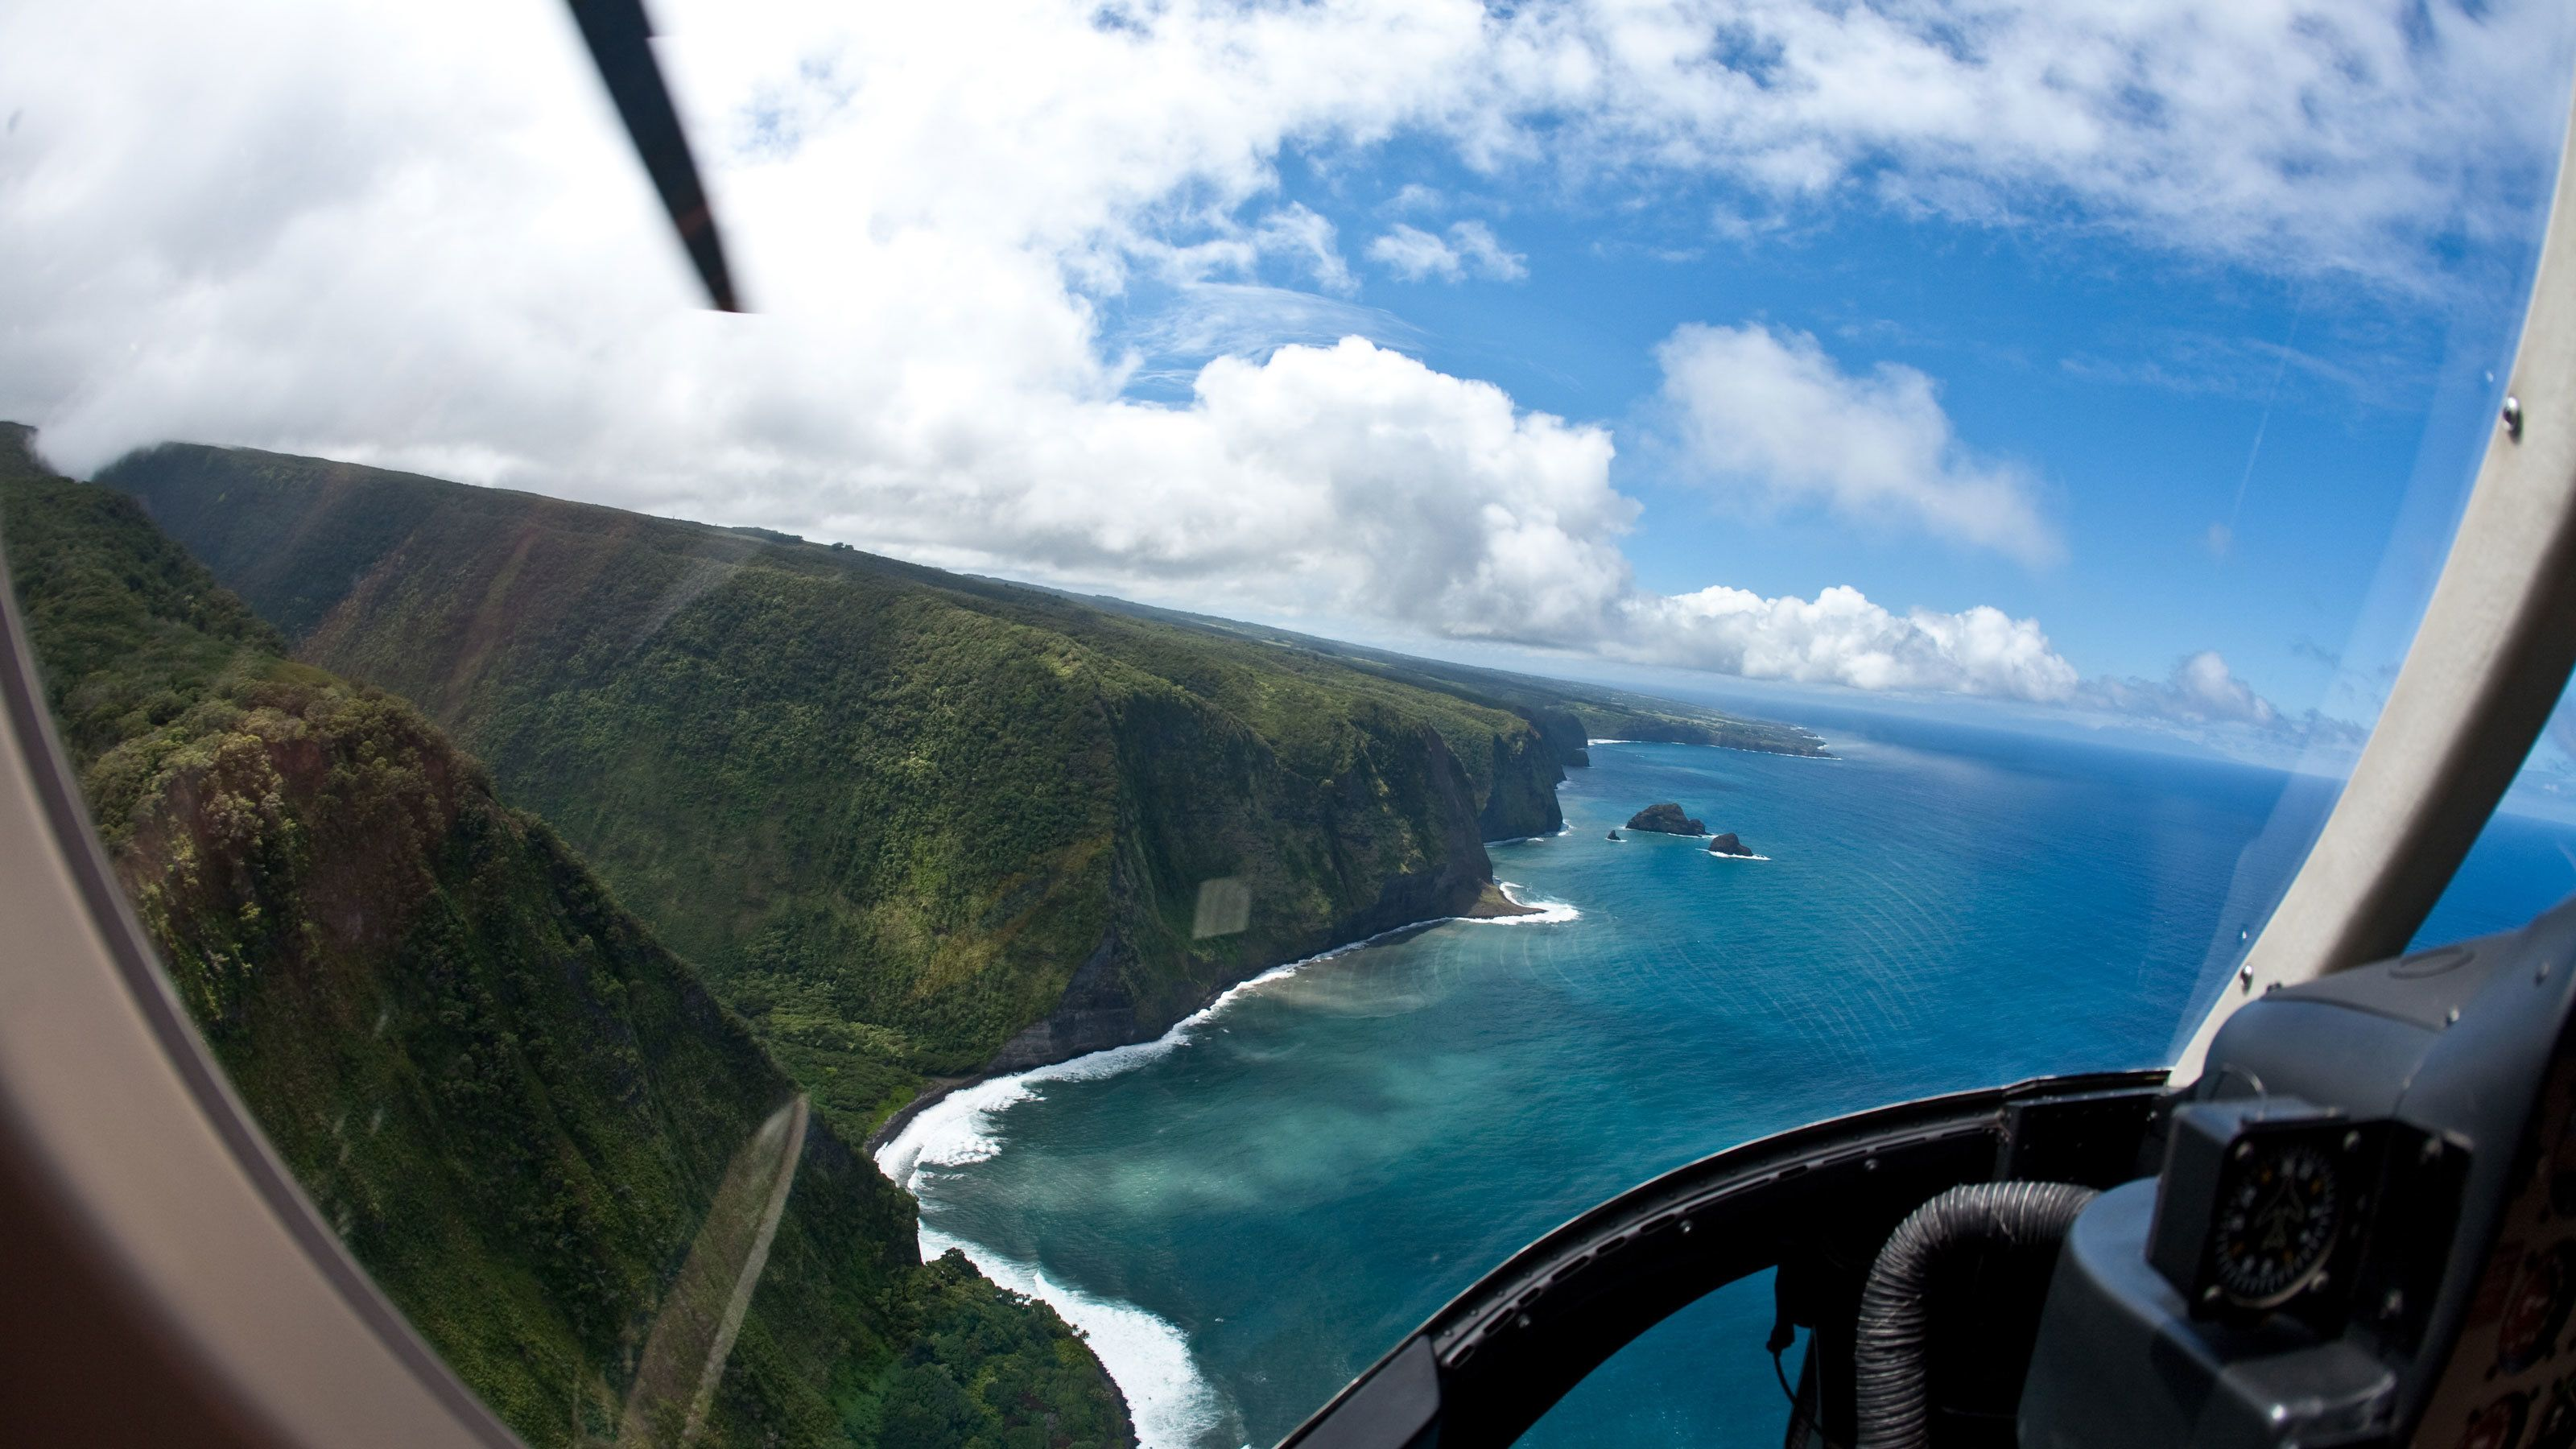 Helicopters pilots point of view over the cliffs on the shore line in Hawaii